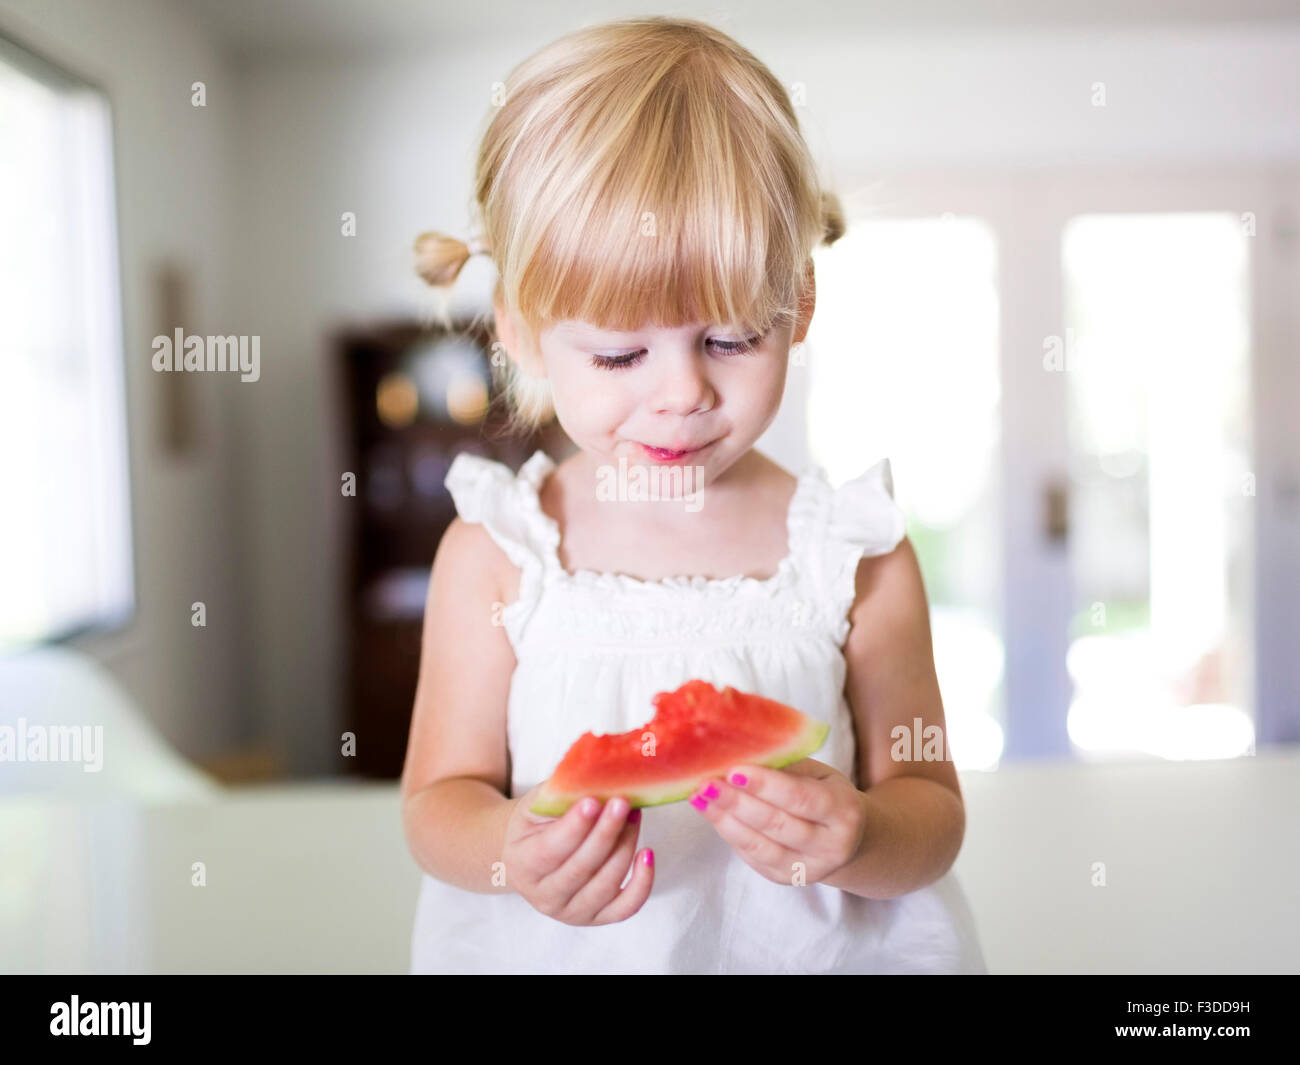 Portrait of girl (2-3) eating watermelon - Stock Image